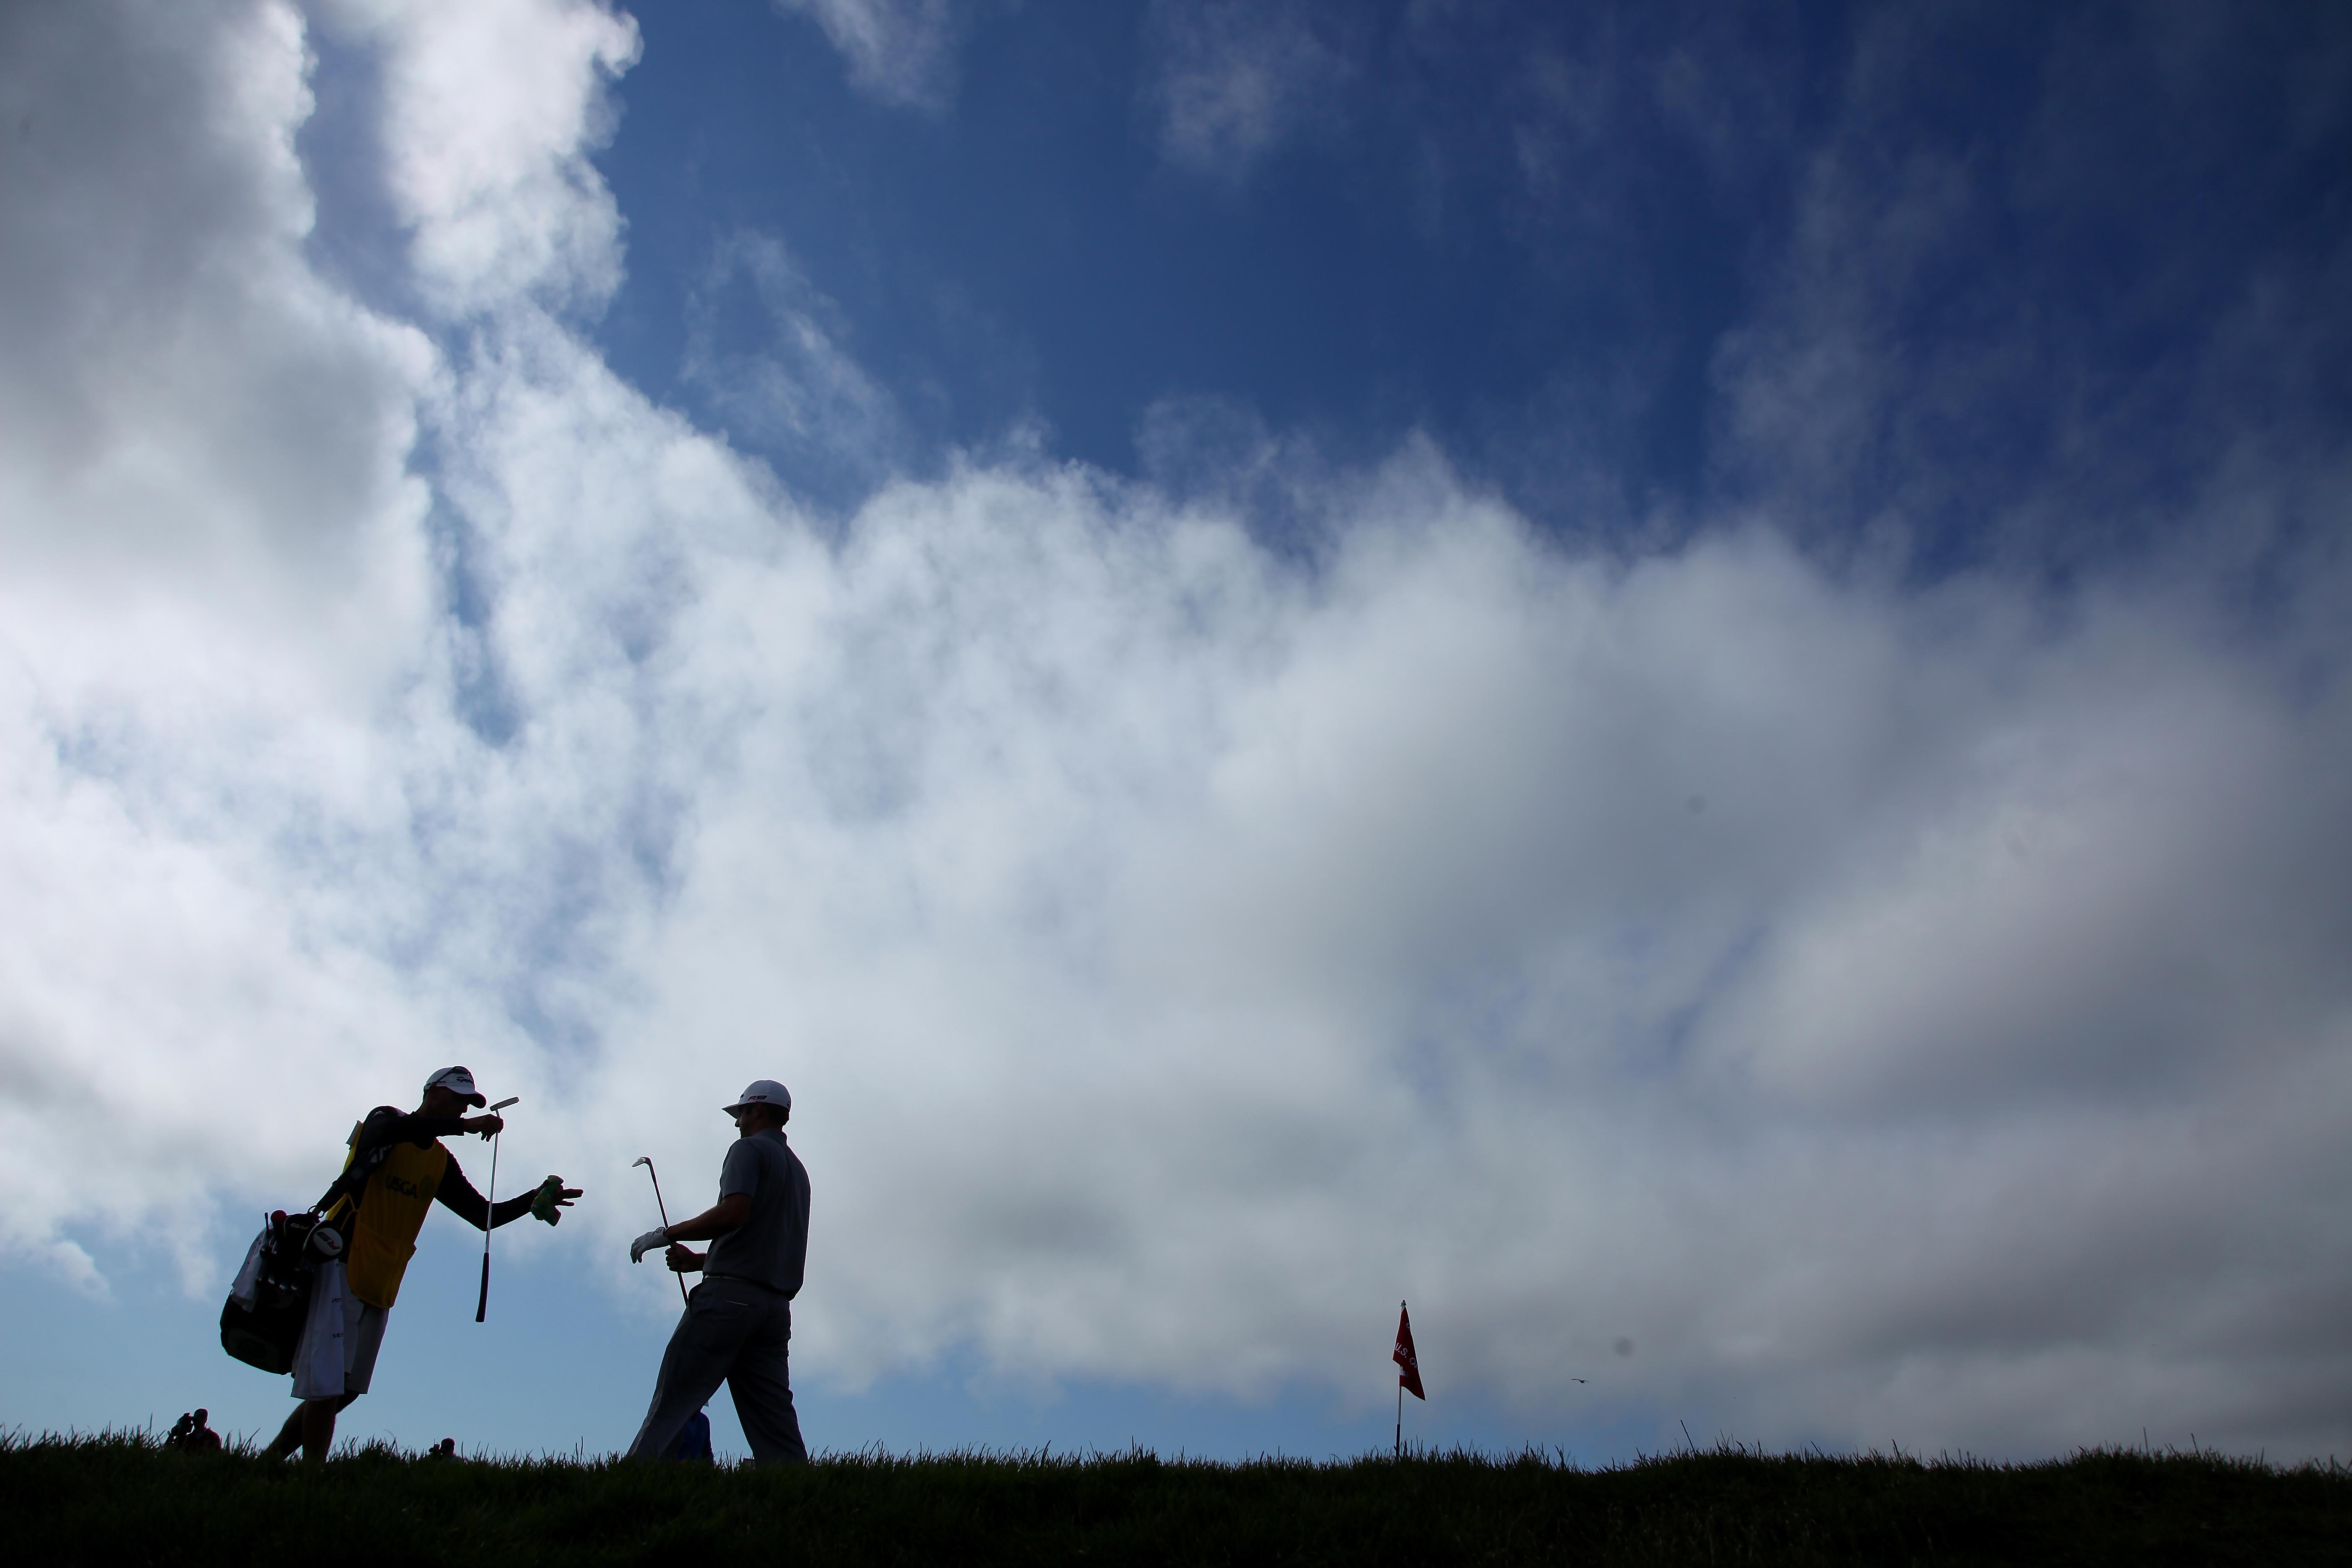 PEBBLE BEACH, CA - JUNE 19:  Dustin Johnson grabs his putter from his caddie Bobby Brown on the eigth hole during the third round of the 110th U.S. Open at Pebble Beach Golf Links on June 19, 2010 in Pebble Beach, California.  (Photo by Donald Miralle/Get